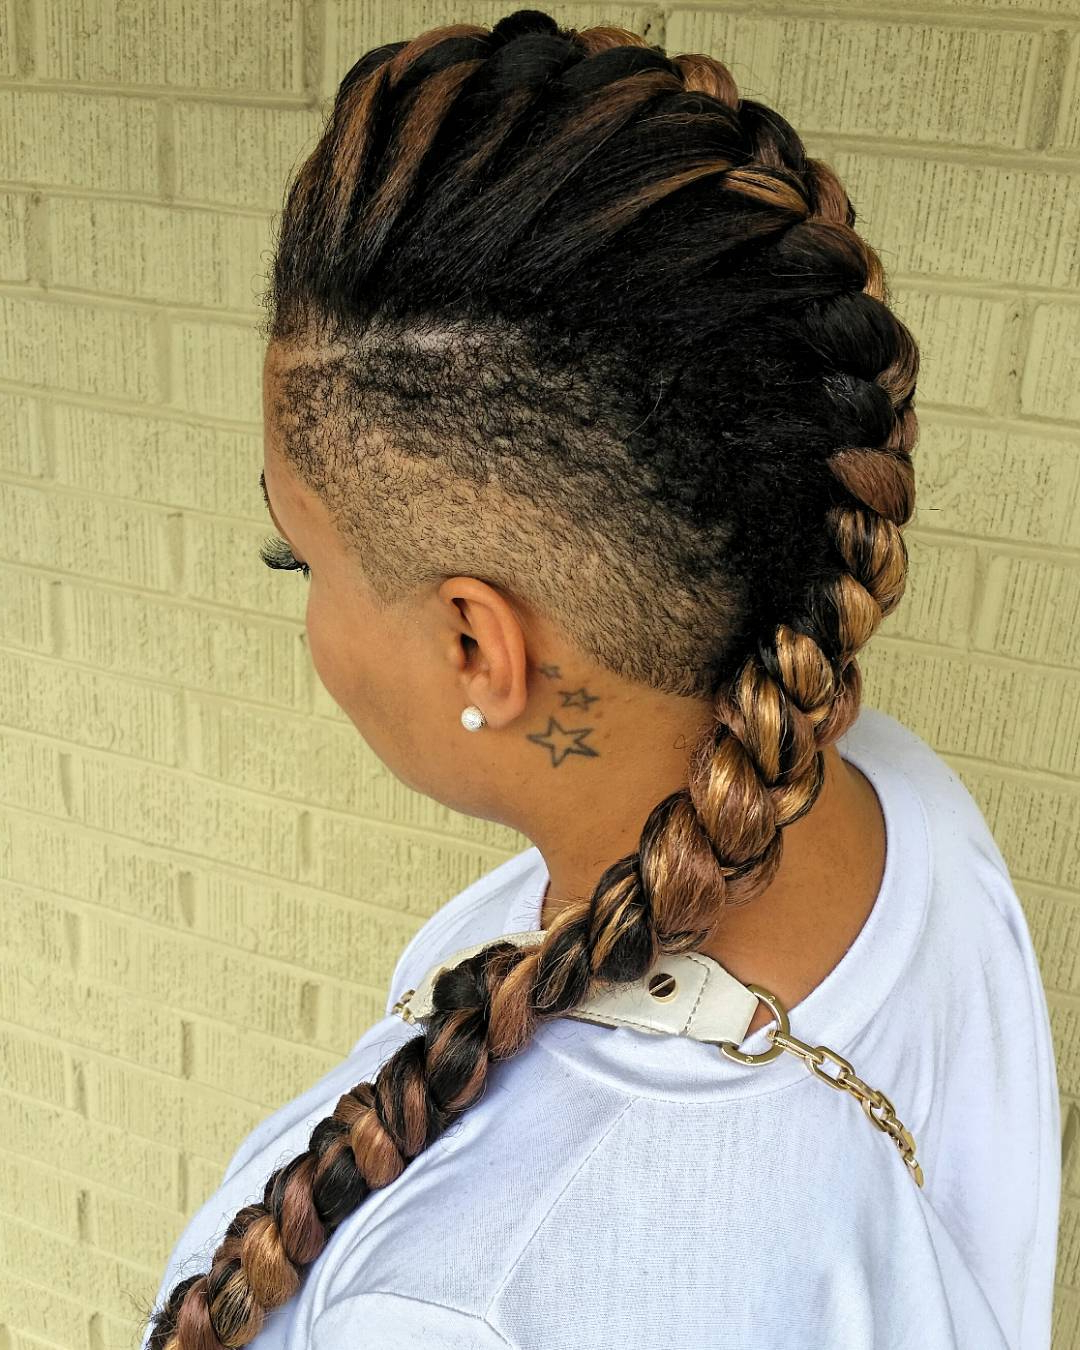 Fashionable Braided Bantu Knots Mohawk Hairstyles Throughout Mohawk Braids: 12 Braided Mohawk Hairstyles That Get Attention (View 8 of 20)